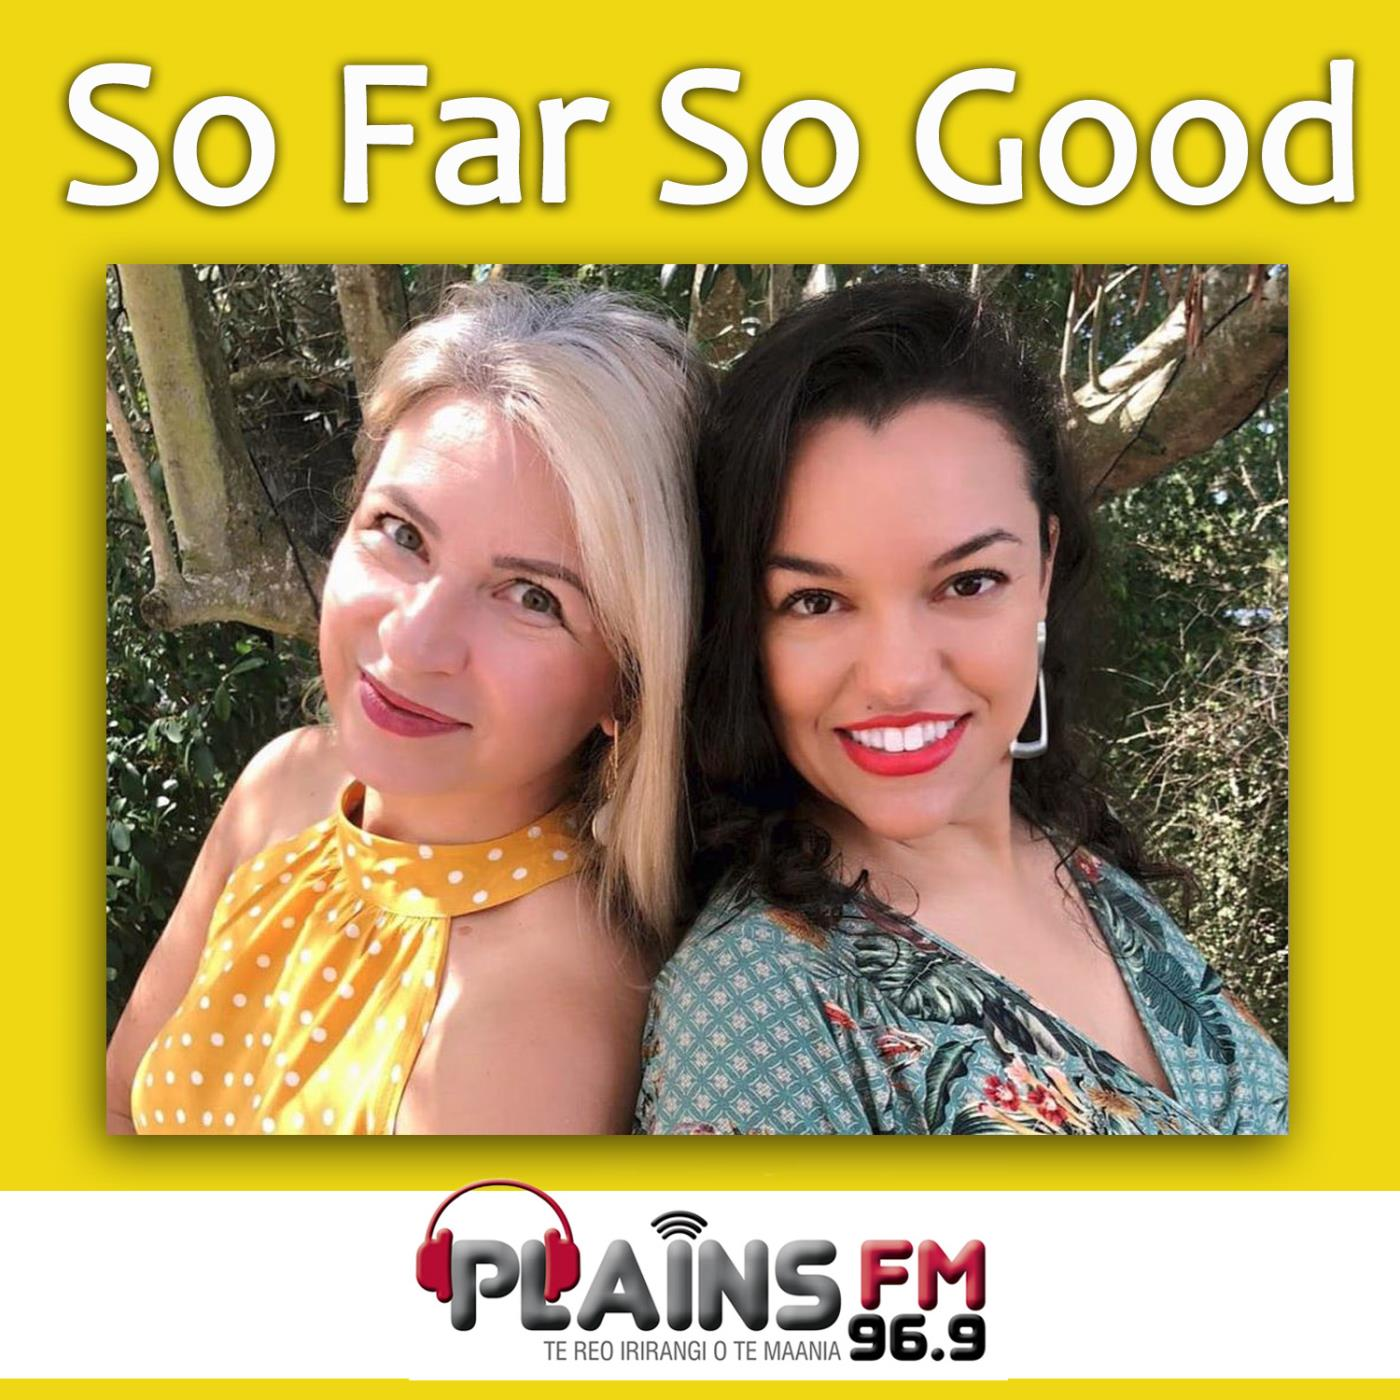 So Far So Good - Ep 9 - Intercultural Marriage: Promises & Pitfalls (in English/ em inglês)